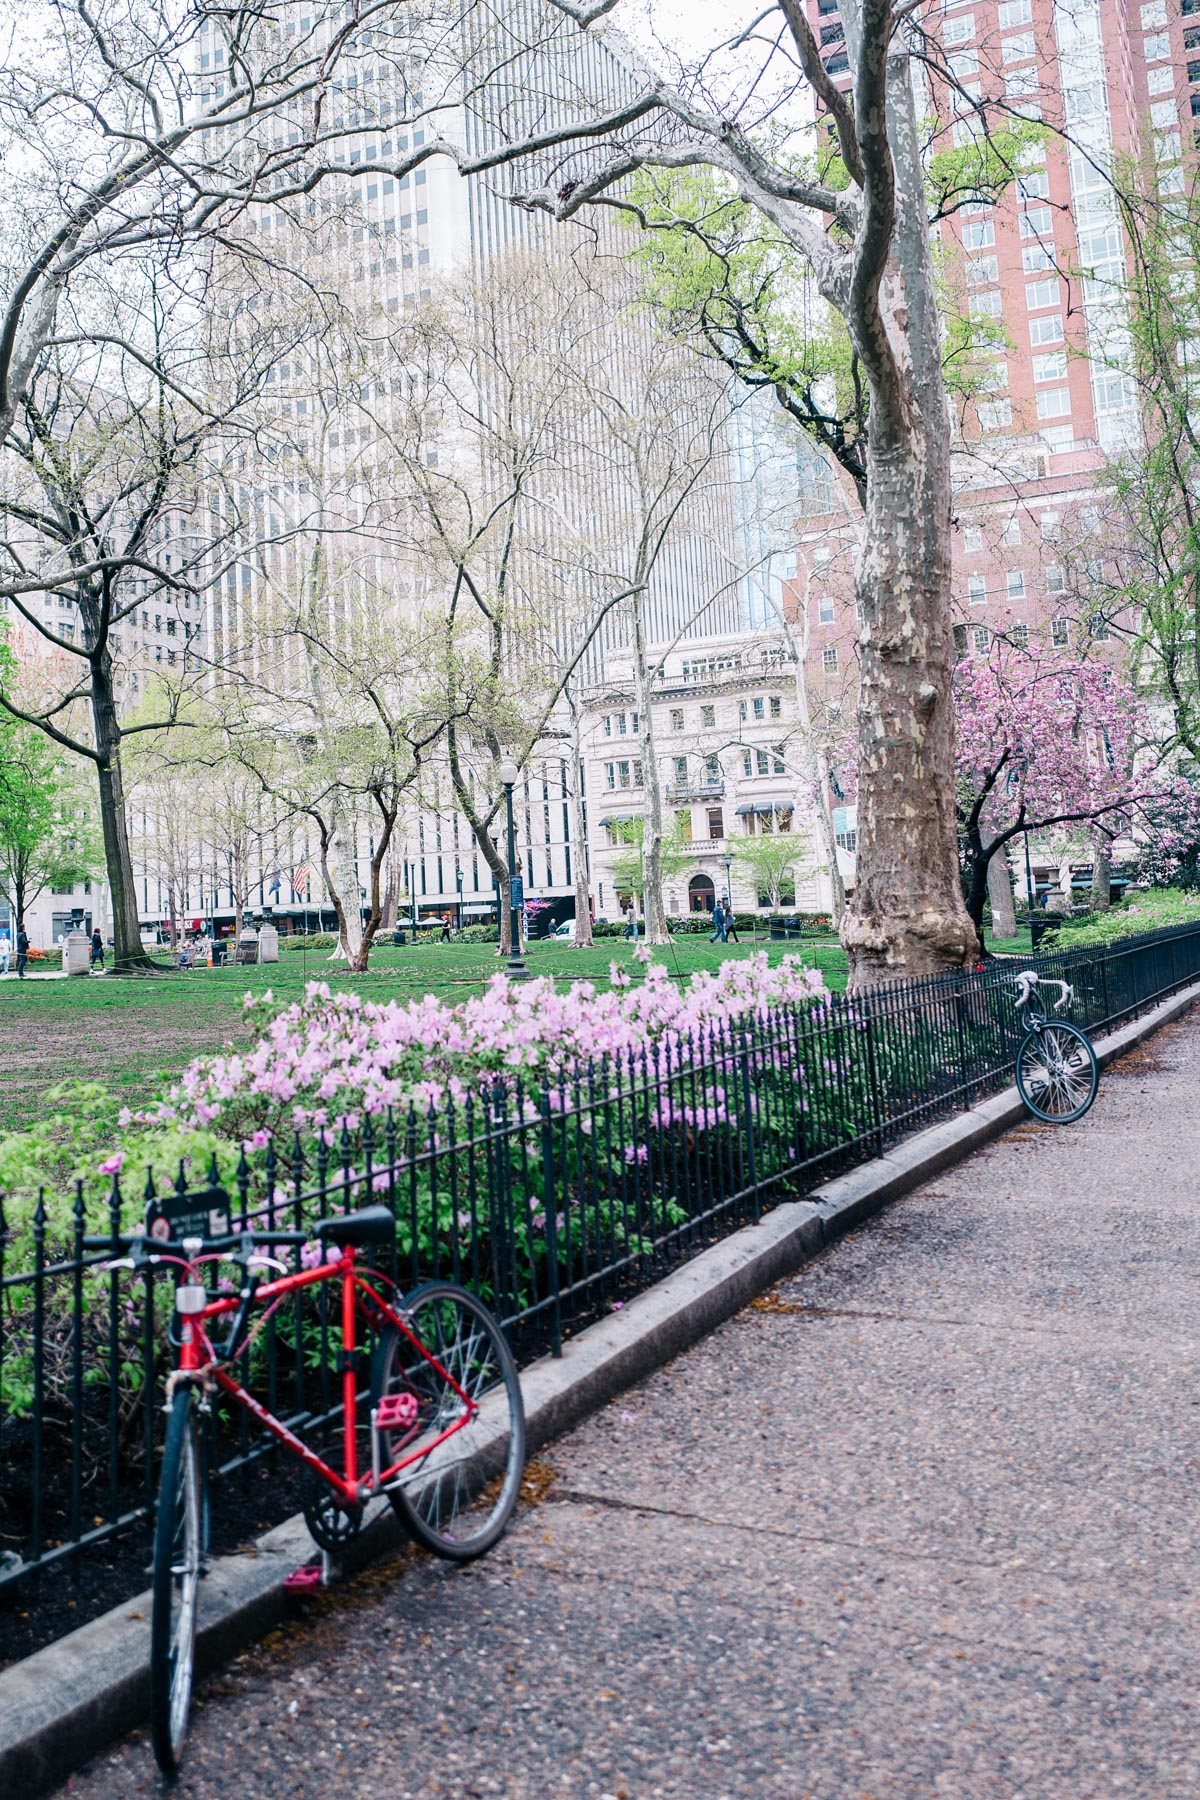 Jess Ann Kirby visits Philly for 48 hours and visits Rittenhouse Square